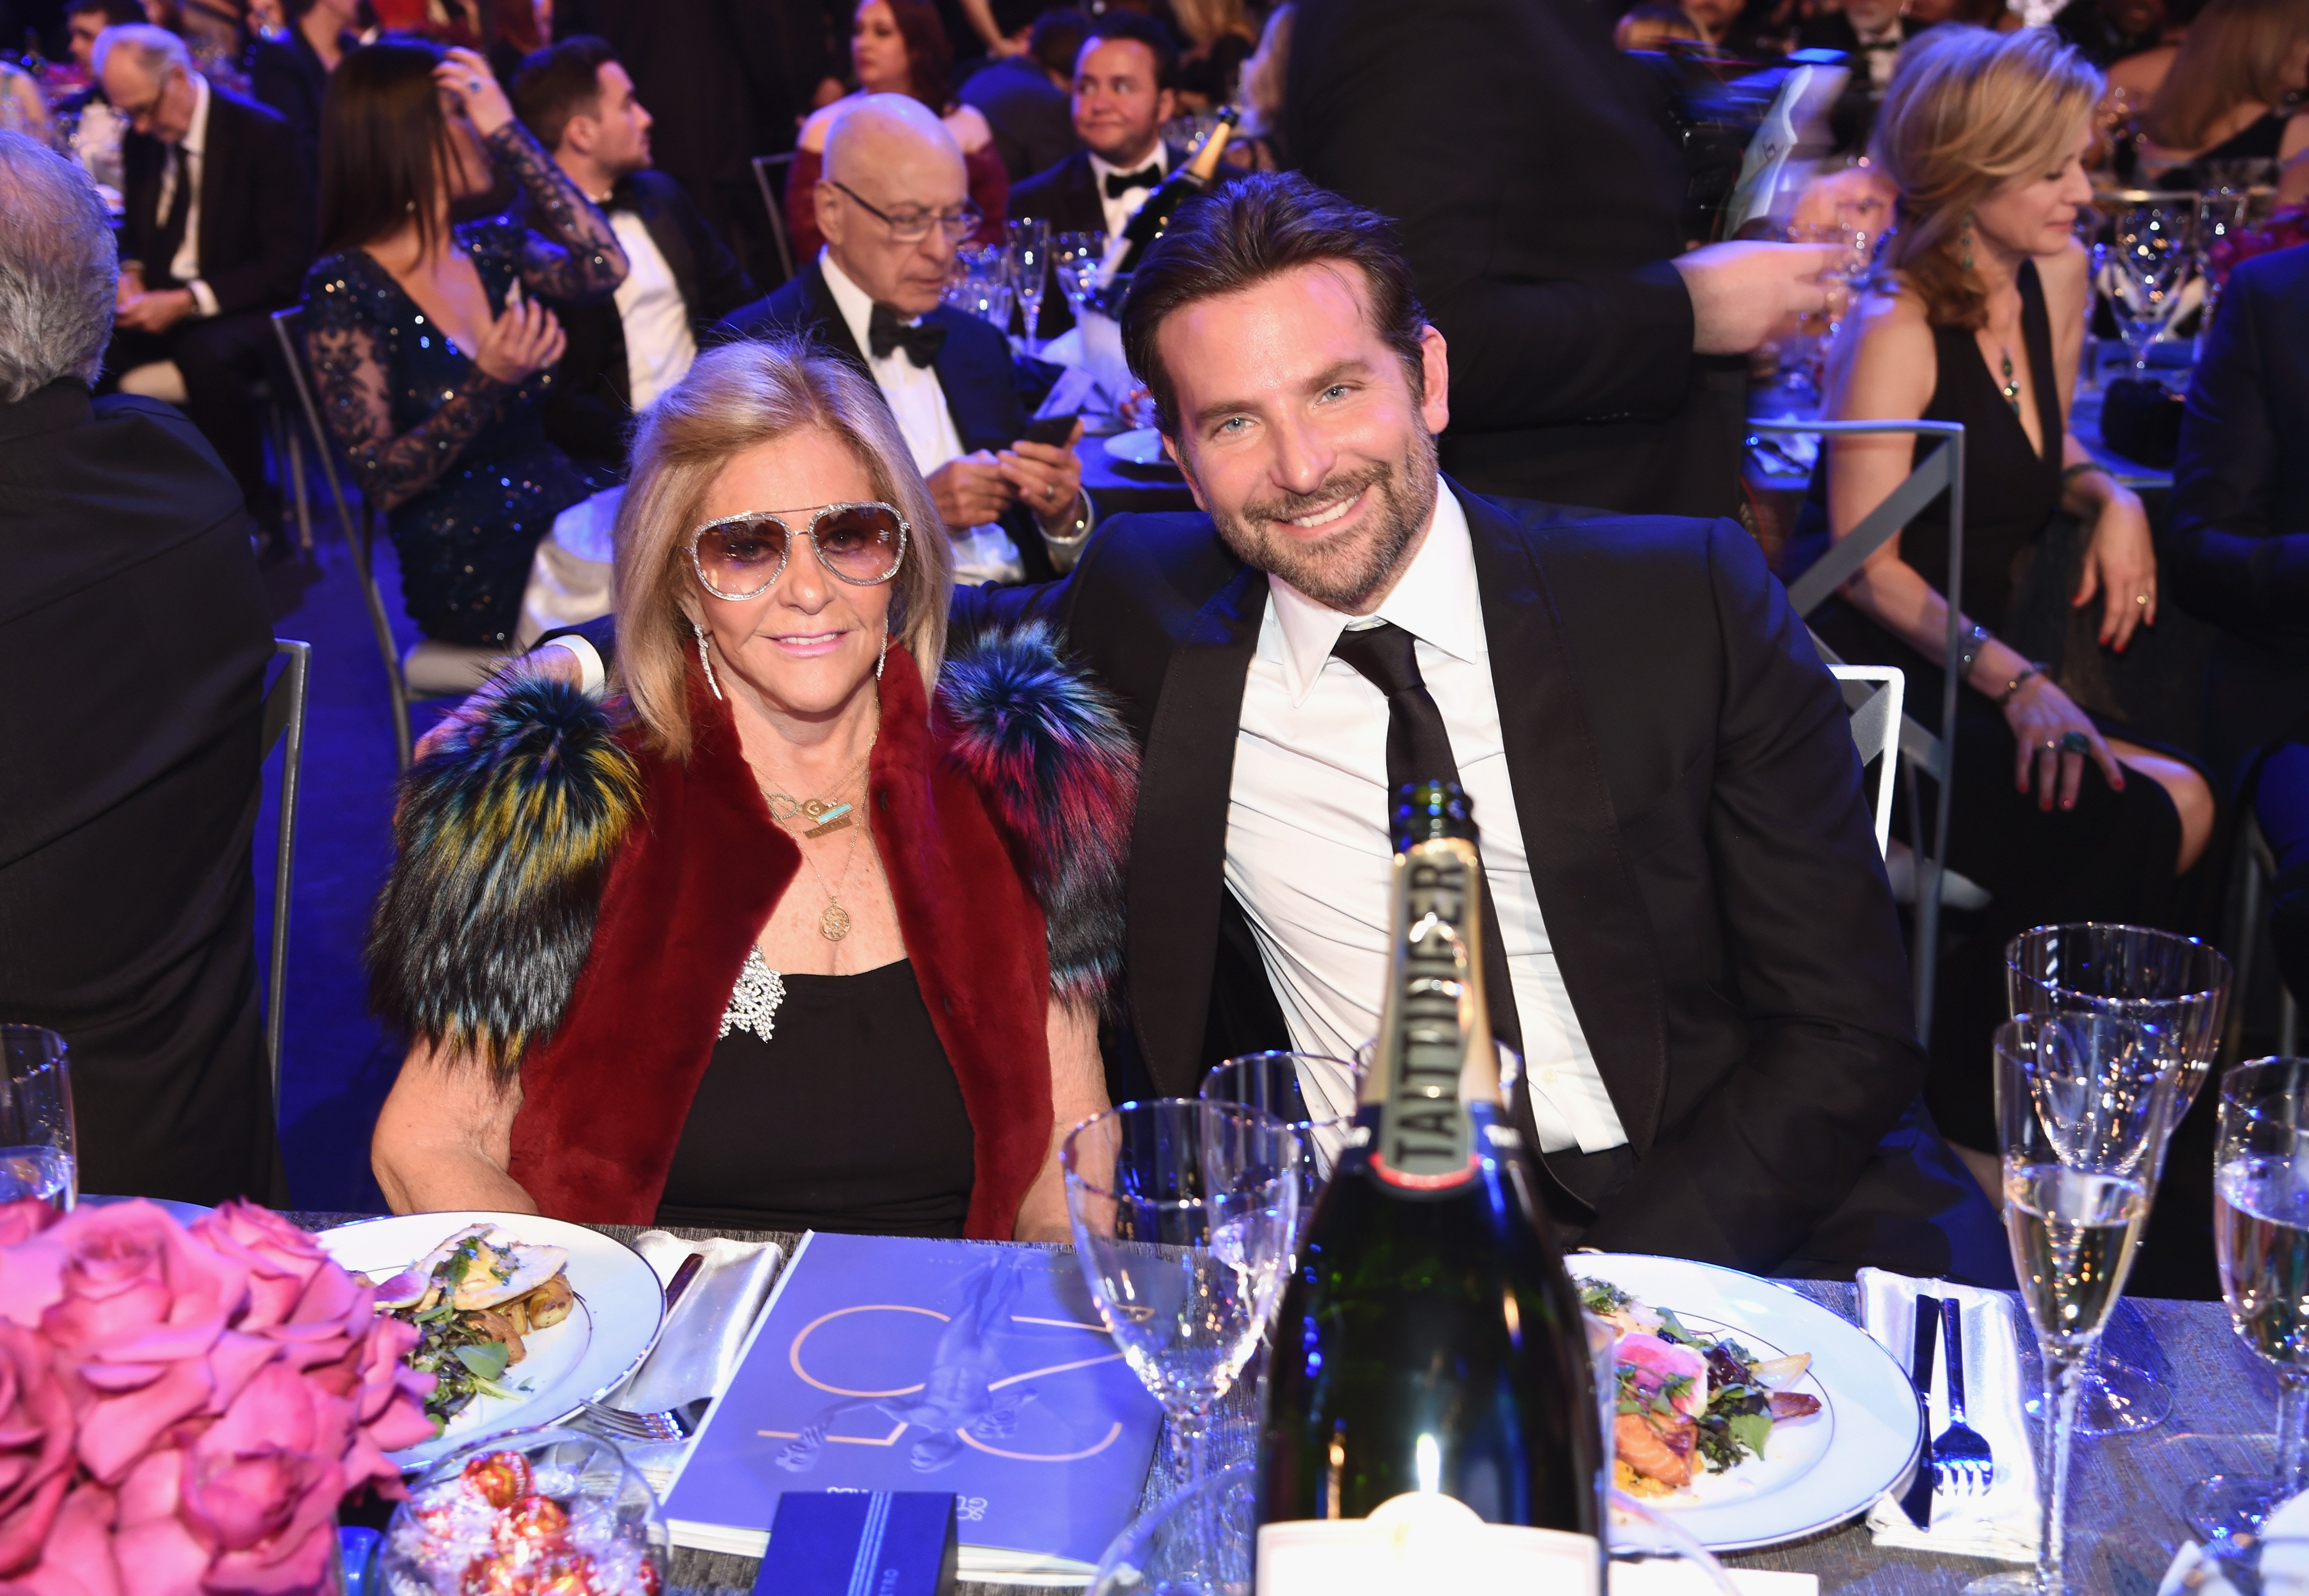 Bradley Cooper and Gloria Campano at 2019 Screen Actors Guild Awards | Photo: Getty Images